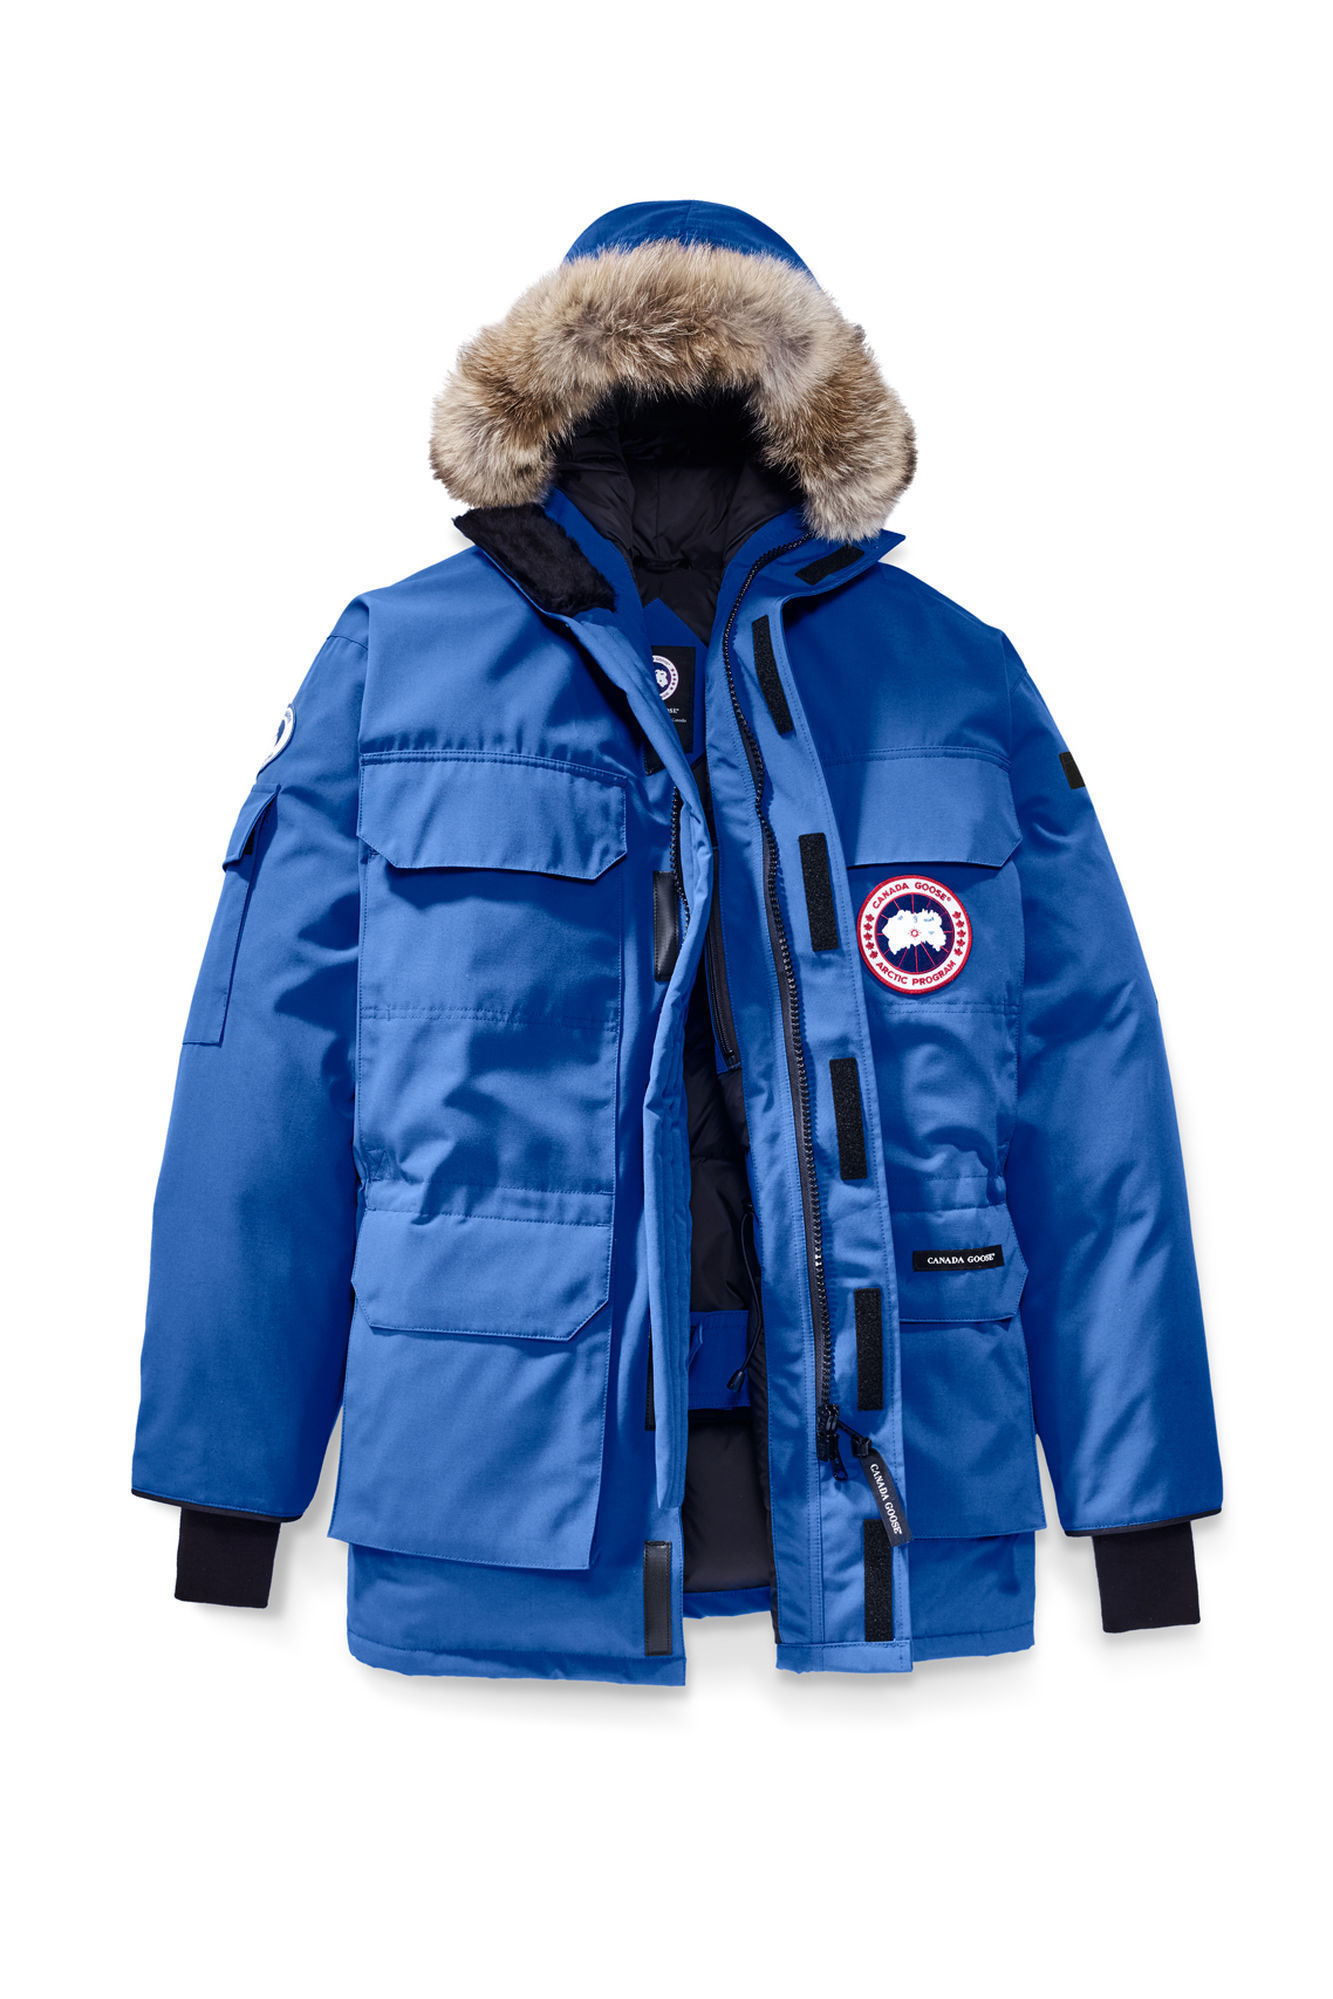 EXPEDITION PARKA Blue MEN'S 4565